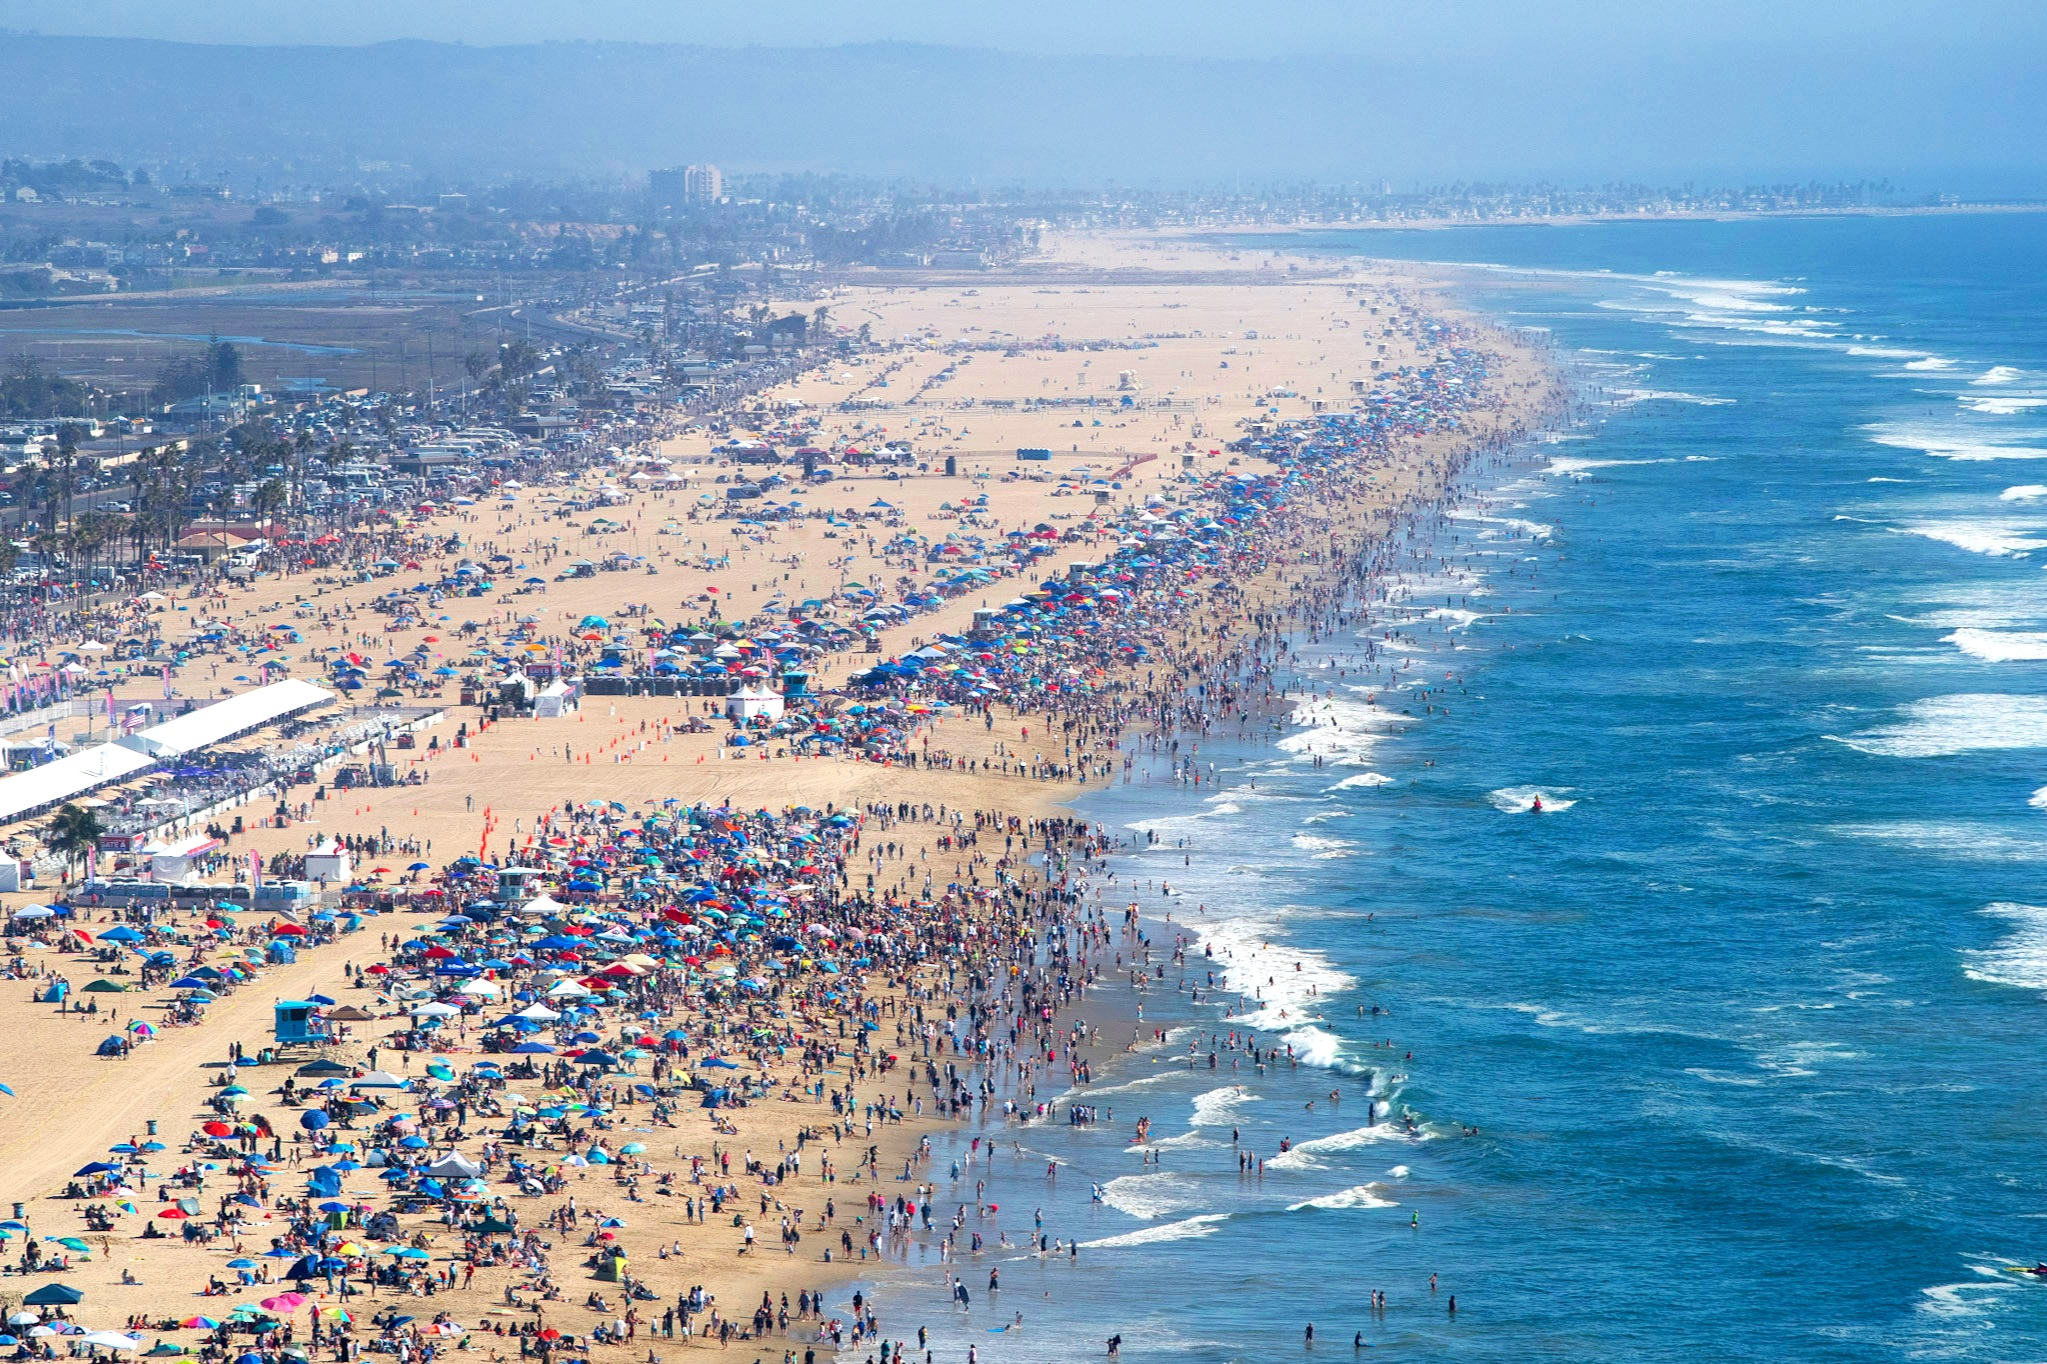 Since its launch in 2016 - TGPA has exploded in popularity. In 2018 we had unprecedented attendance of more than 2 million people (!) making Huntington Beach the destination for the country's best airshow experience.